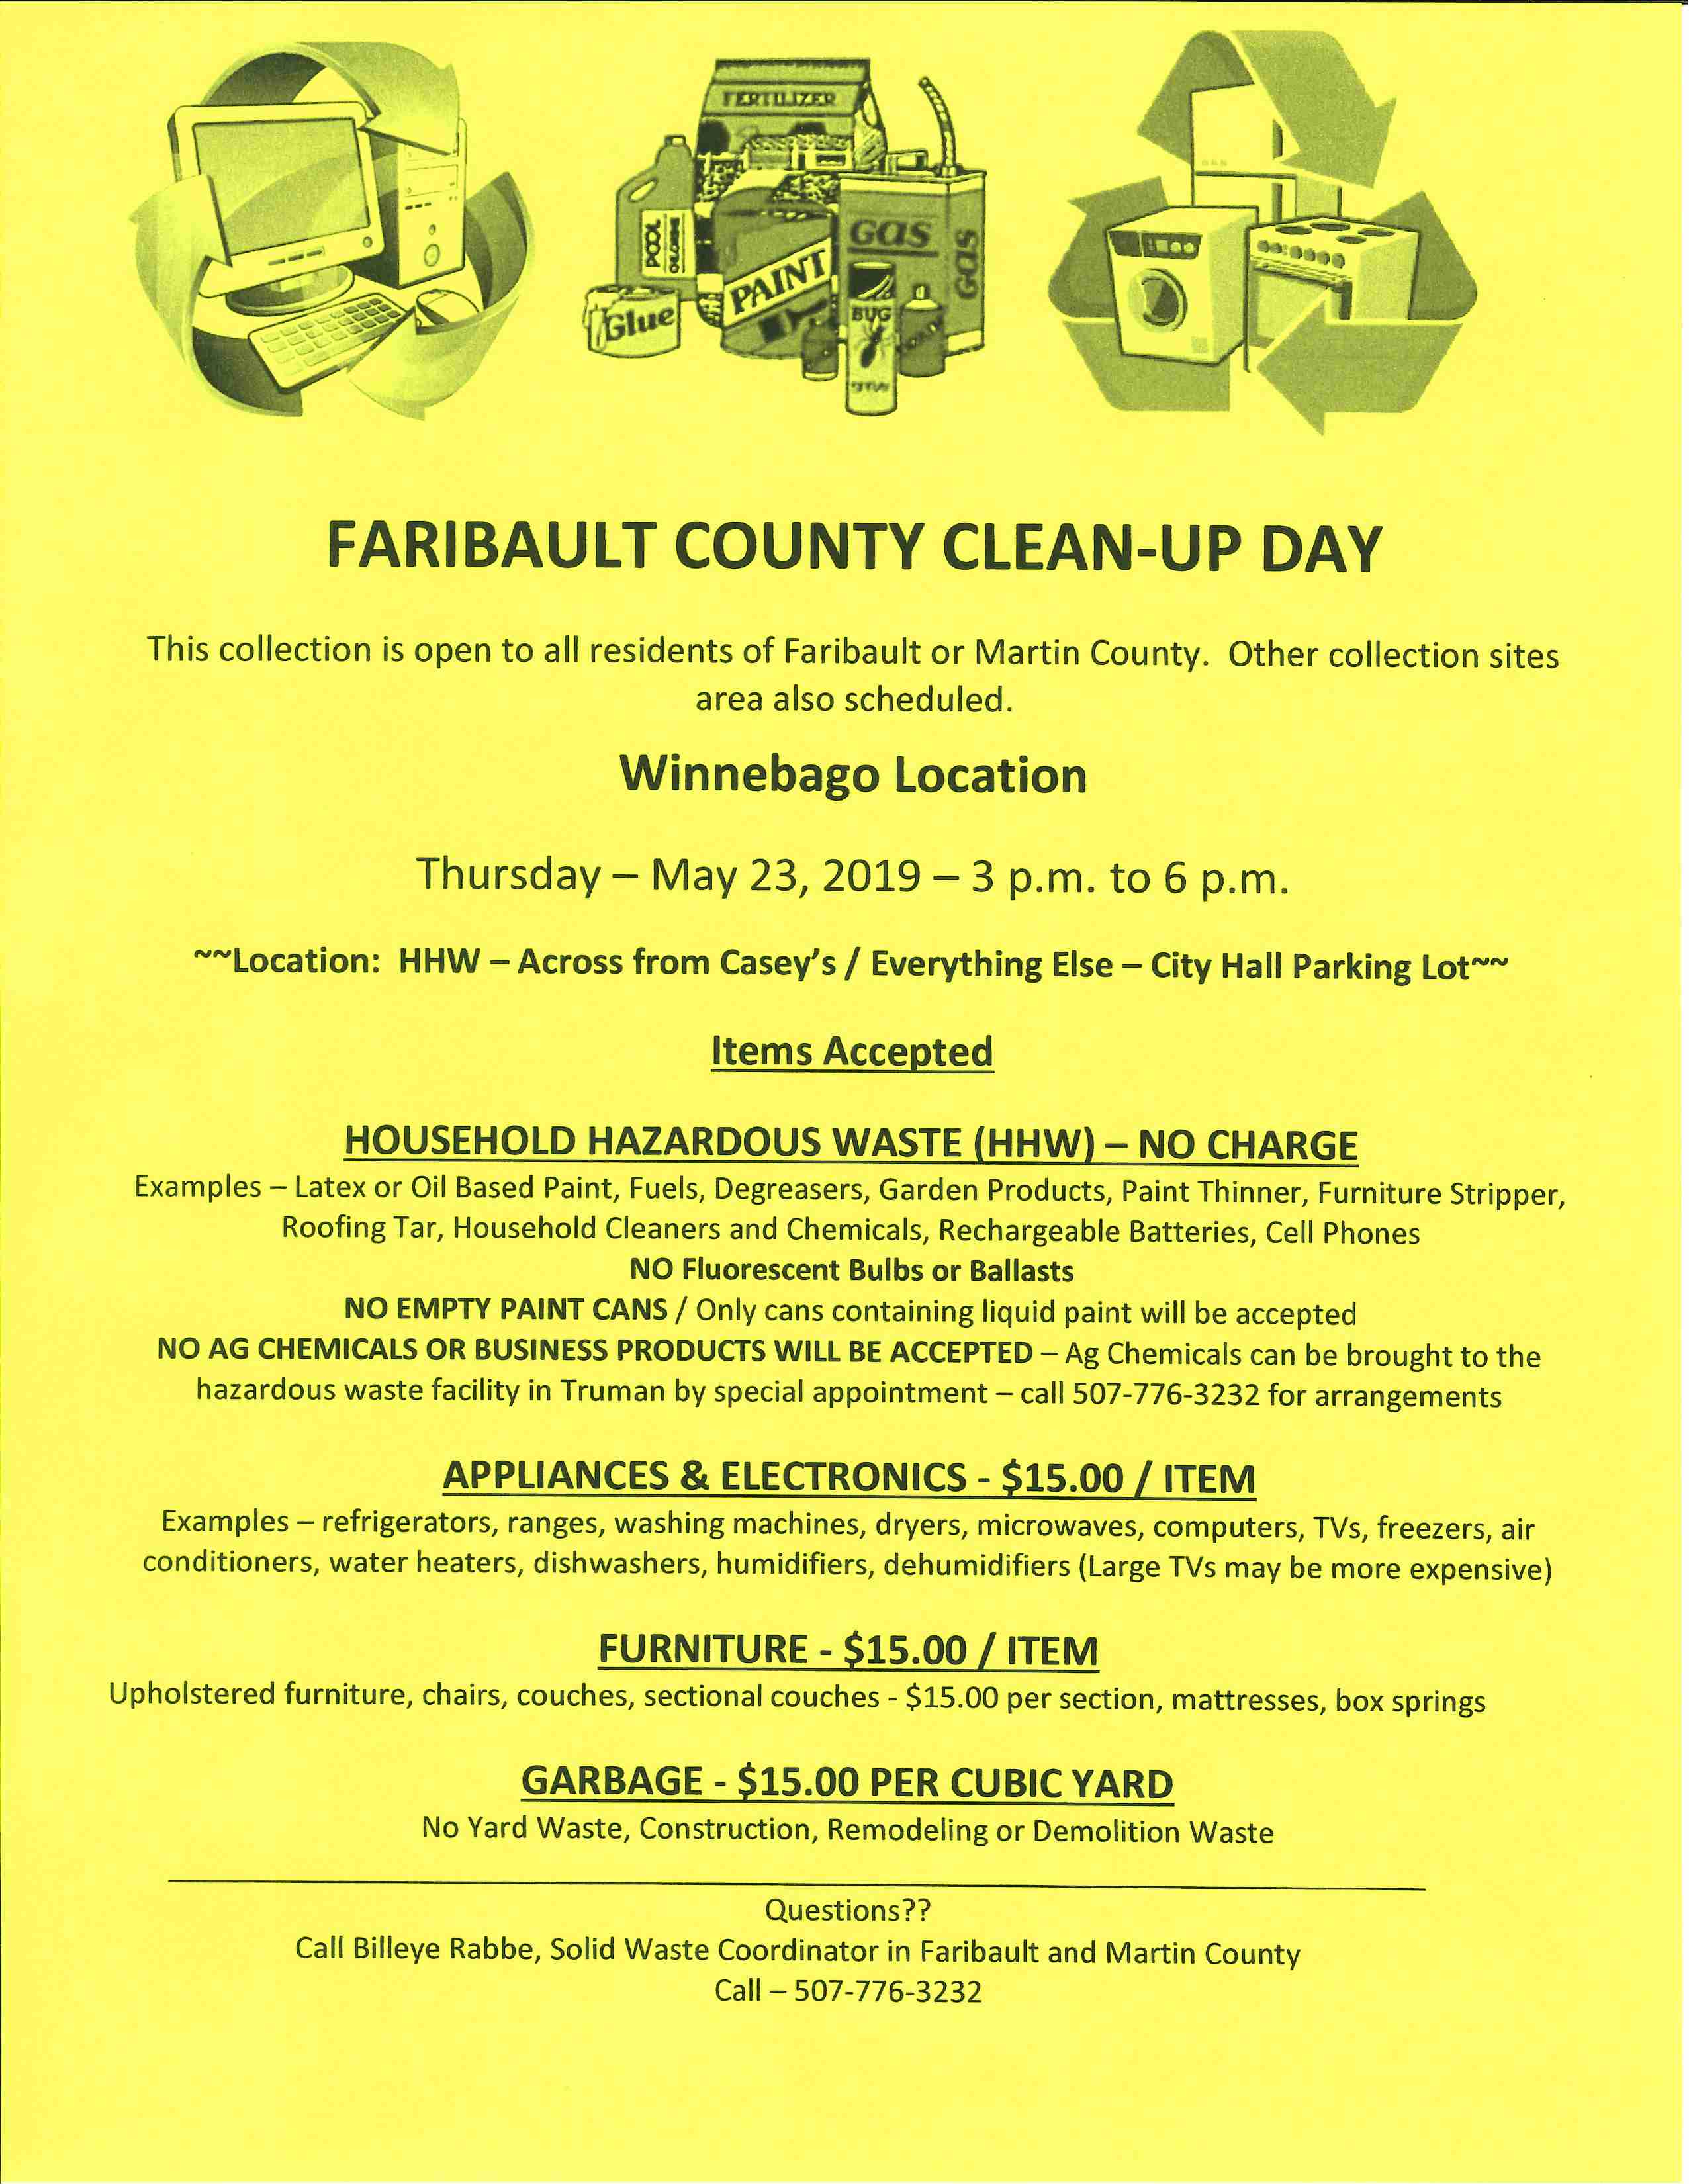 Winneabgo Clean-Up Day